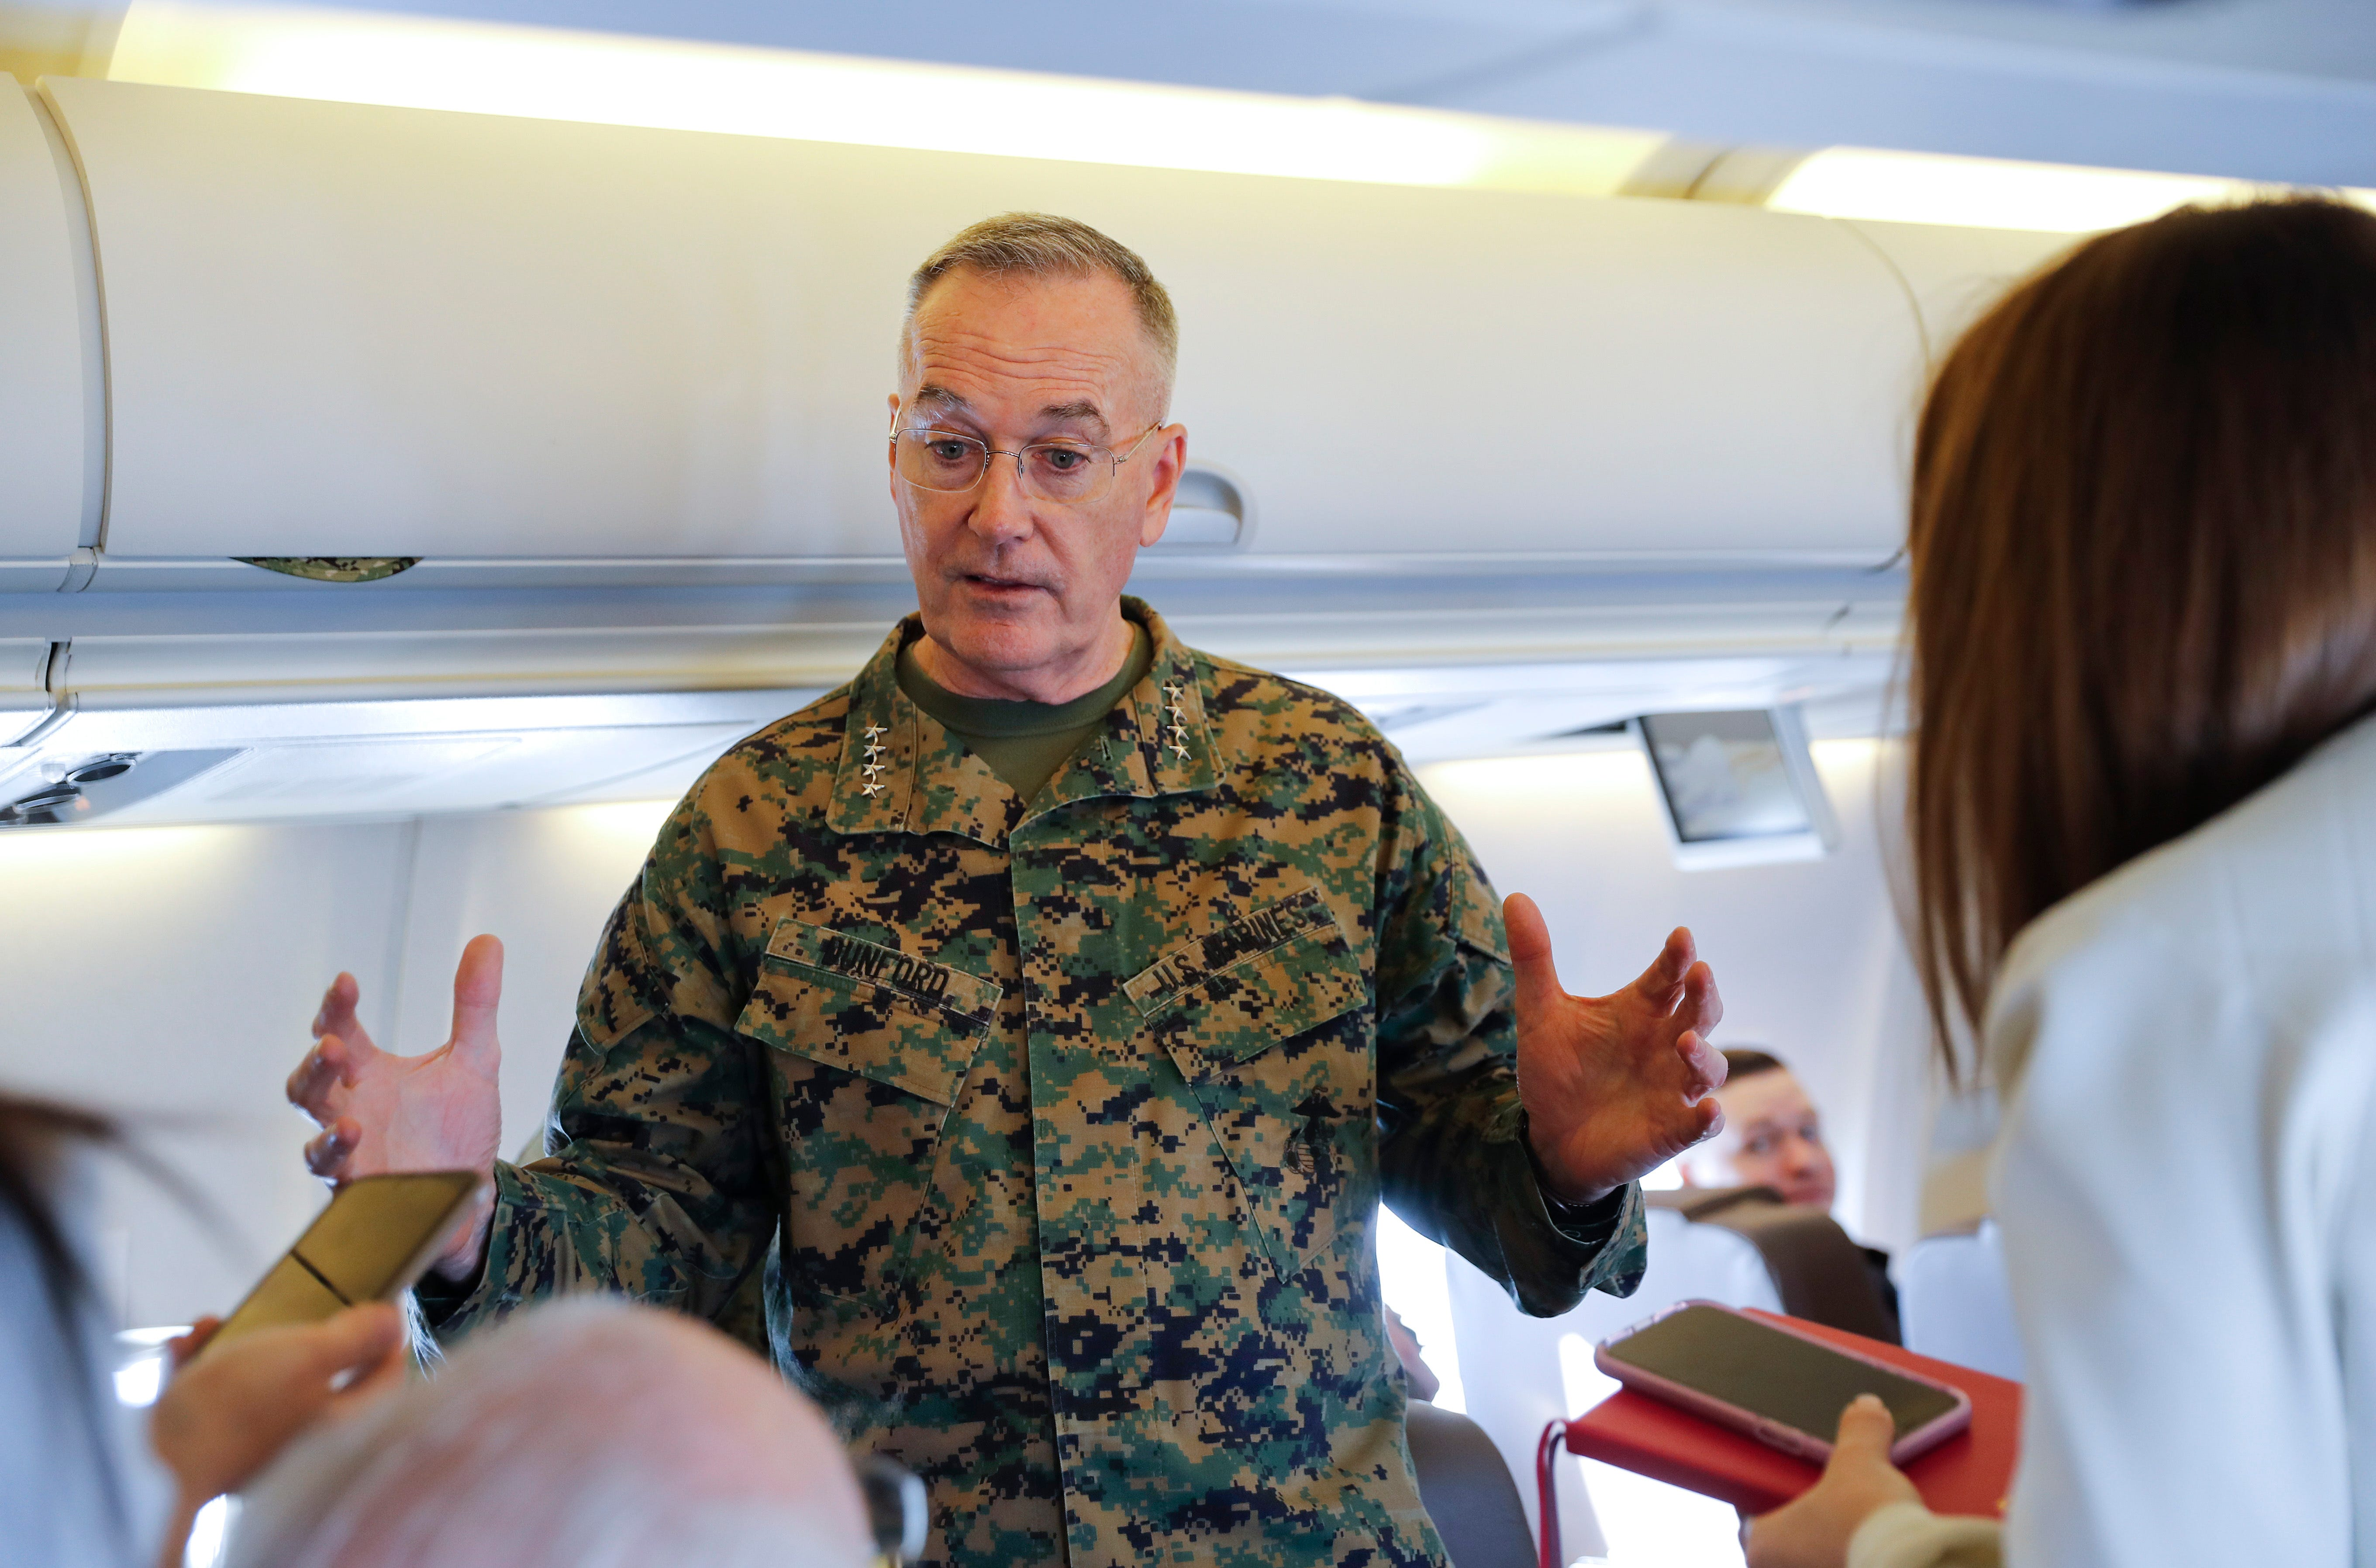 Top defense officials tour El Paso area as military studies how to divert funds for wall | El Paso Times